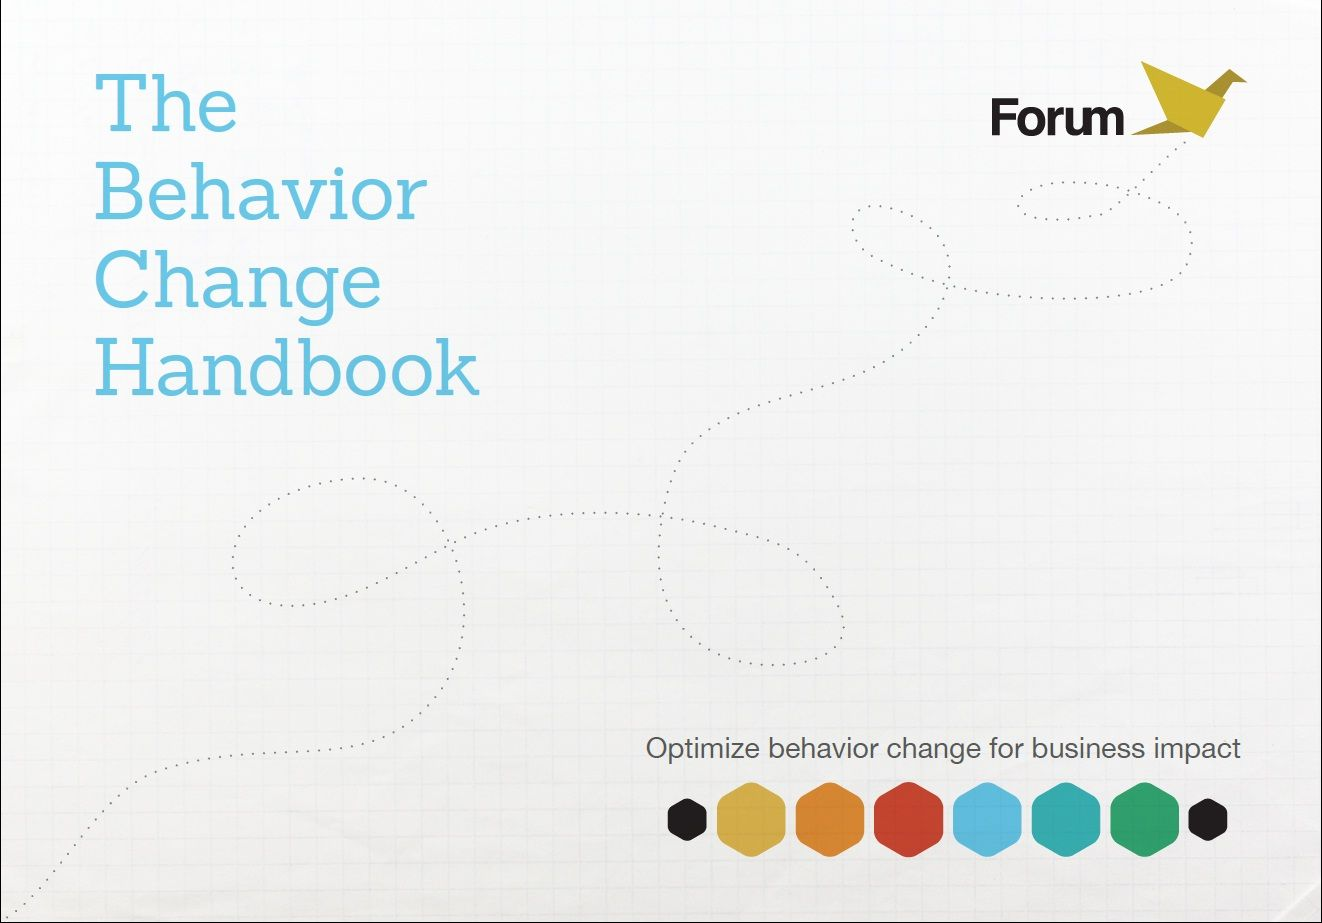 The Behavior Change Handbook Shares Fourm S Approach To